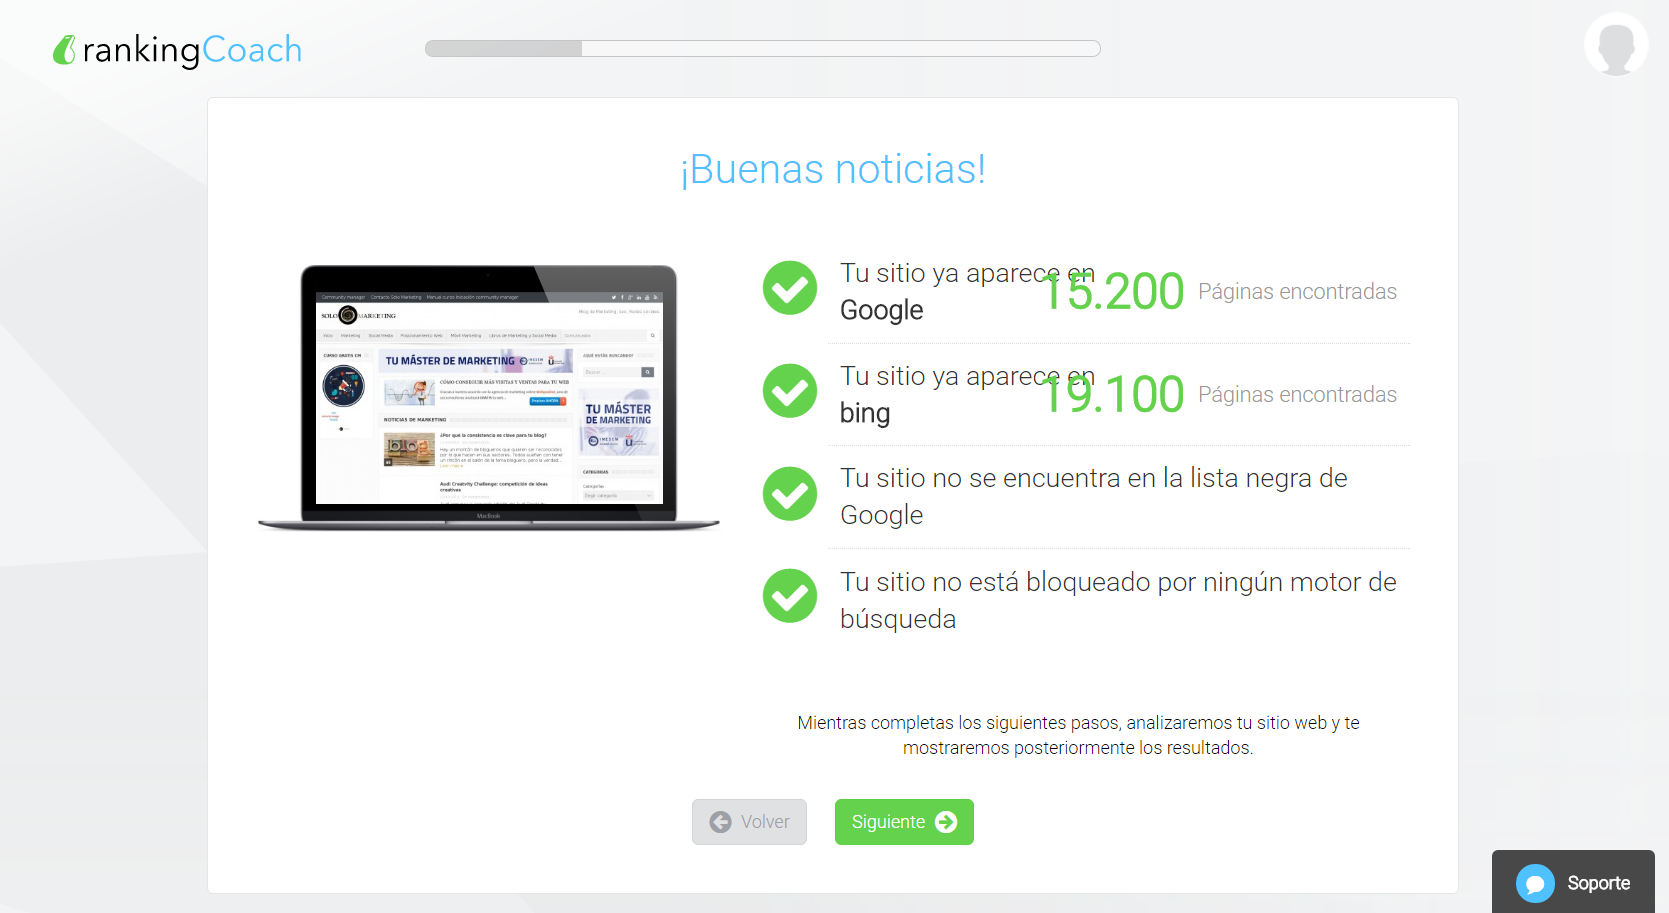 Monitorizando Solomarketing con RankingCoach